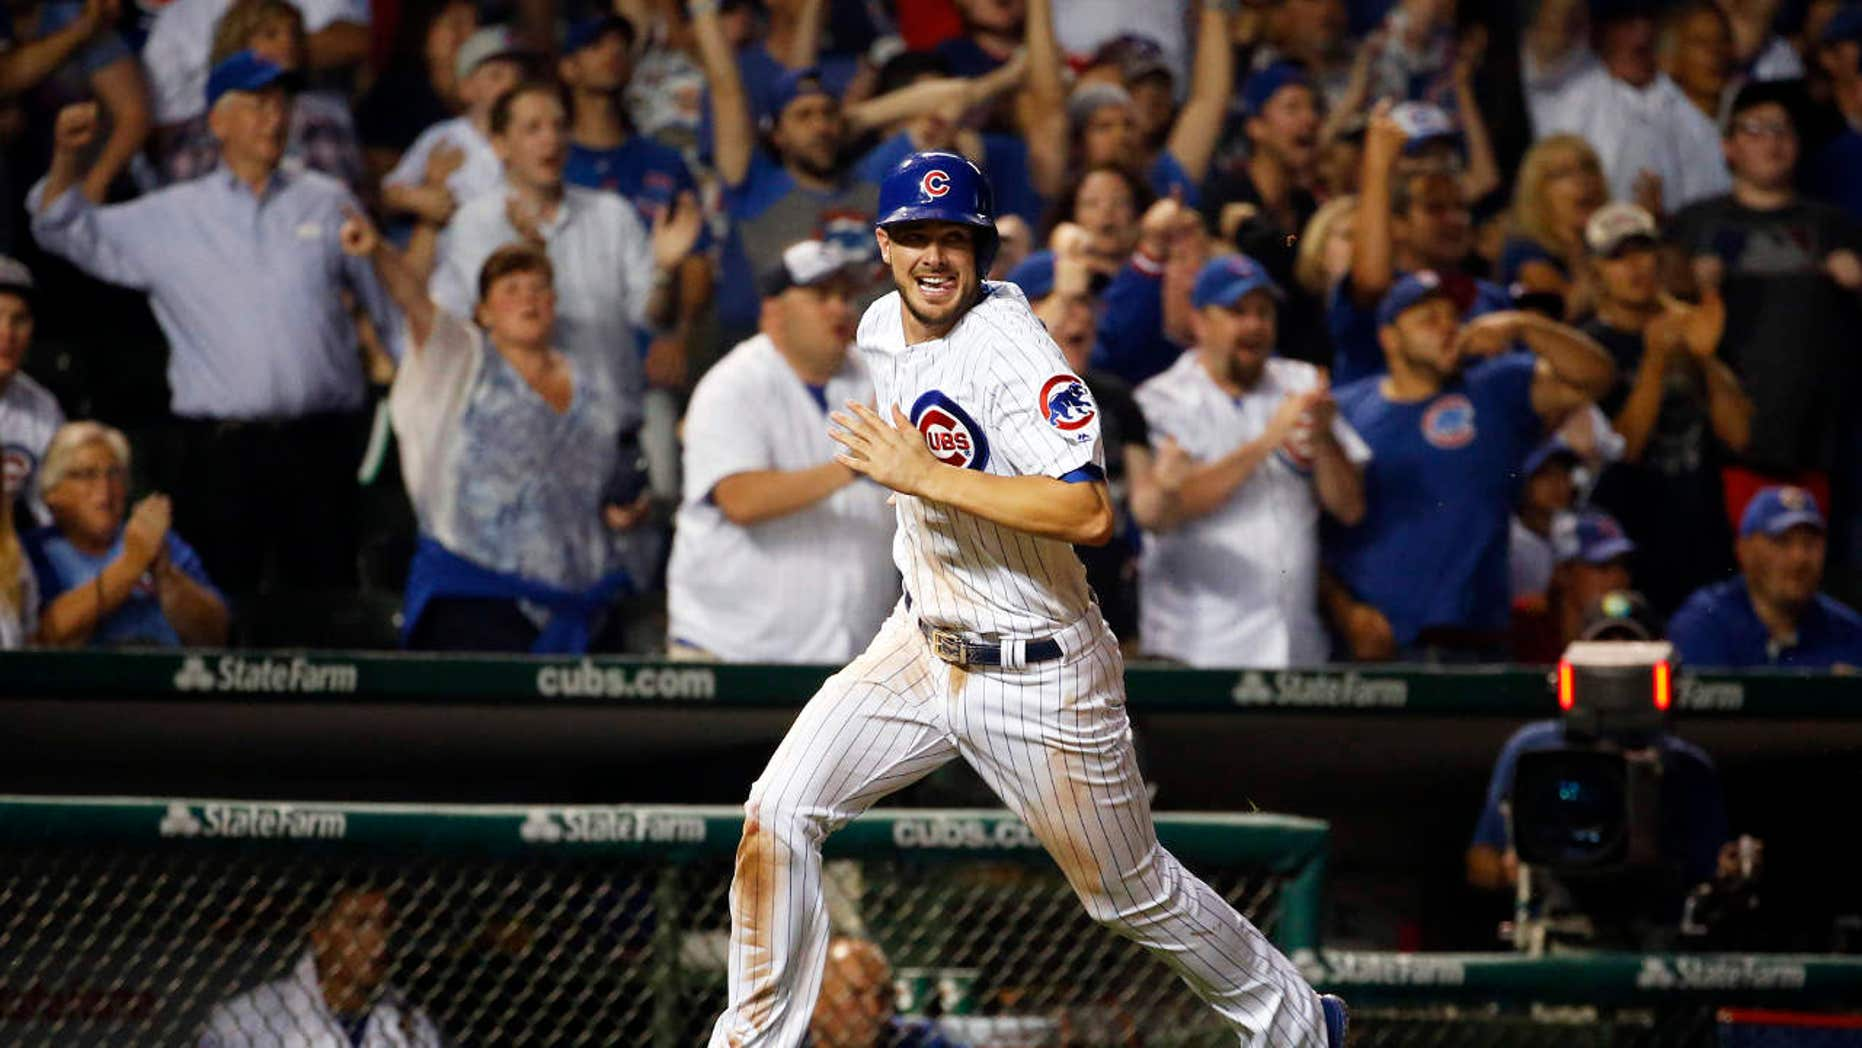 FILE - In this July 7, 2016, file photo, Chicago Cubs' Kris Bryant scores on a single hit by Ben Zobrist during the eighth inning of a baseball game against the Atlanta Braves, in Chicago.